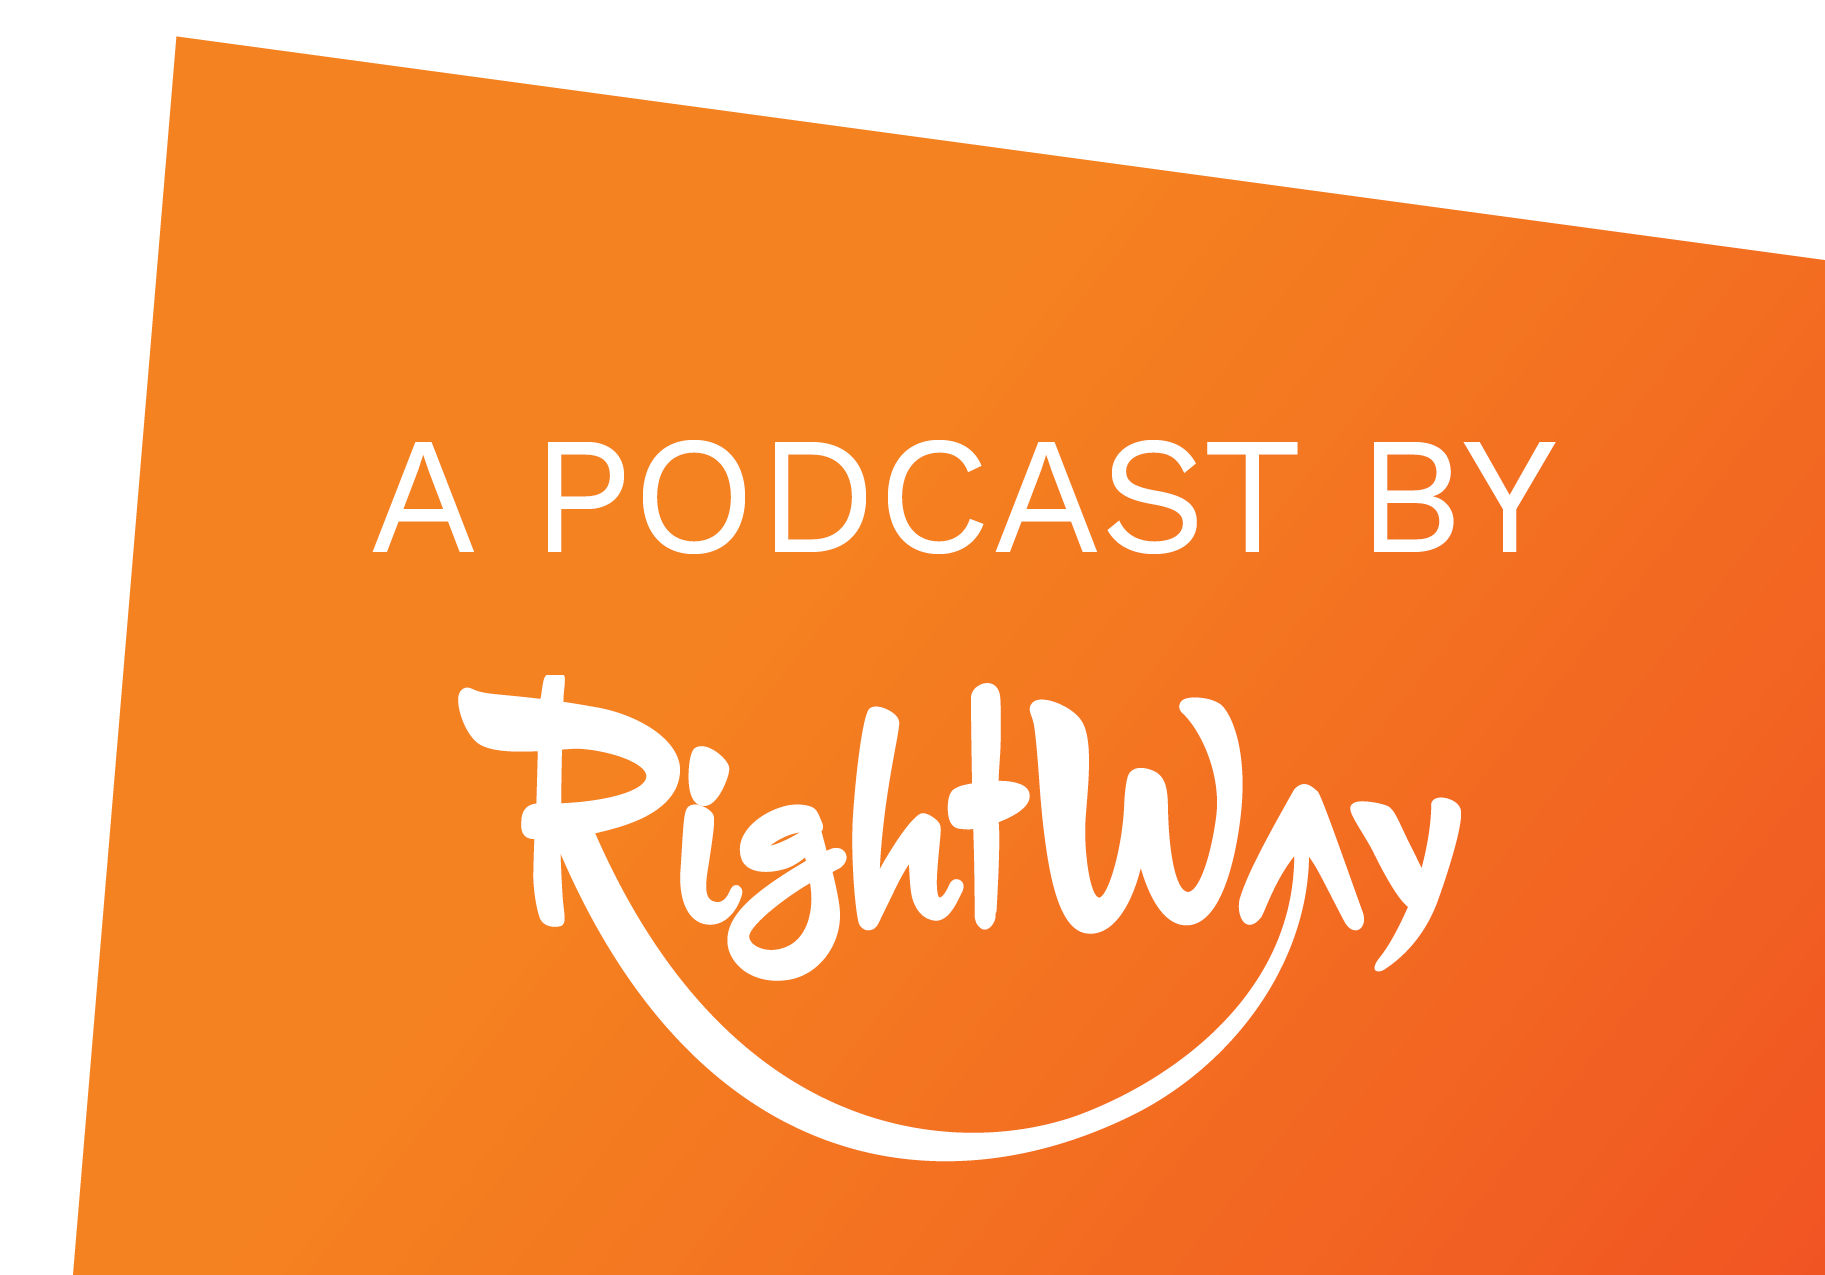 A podcast by RightWay